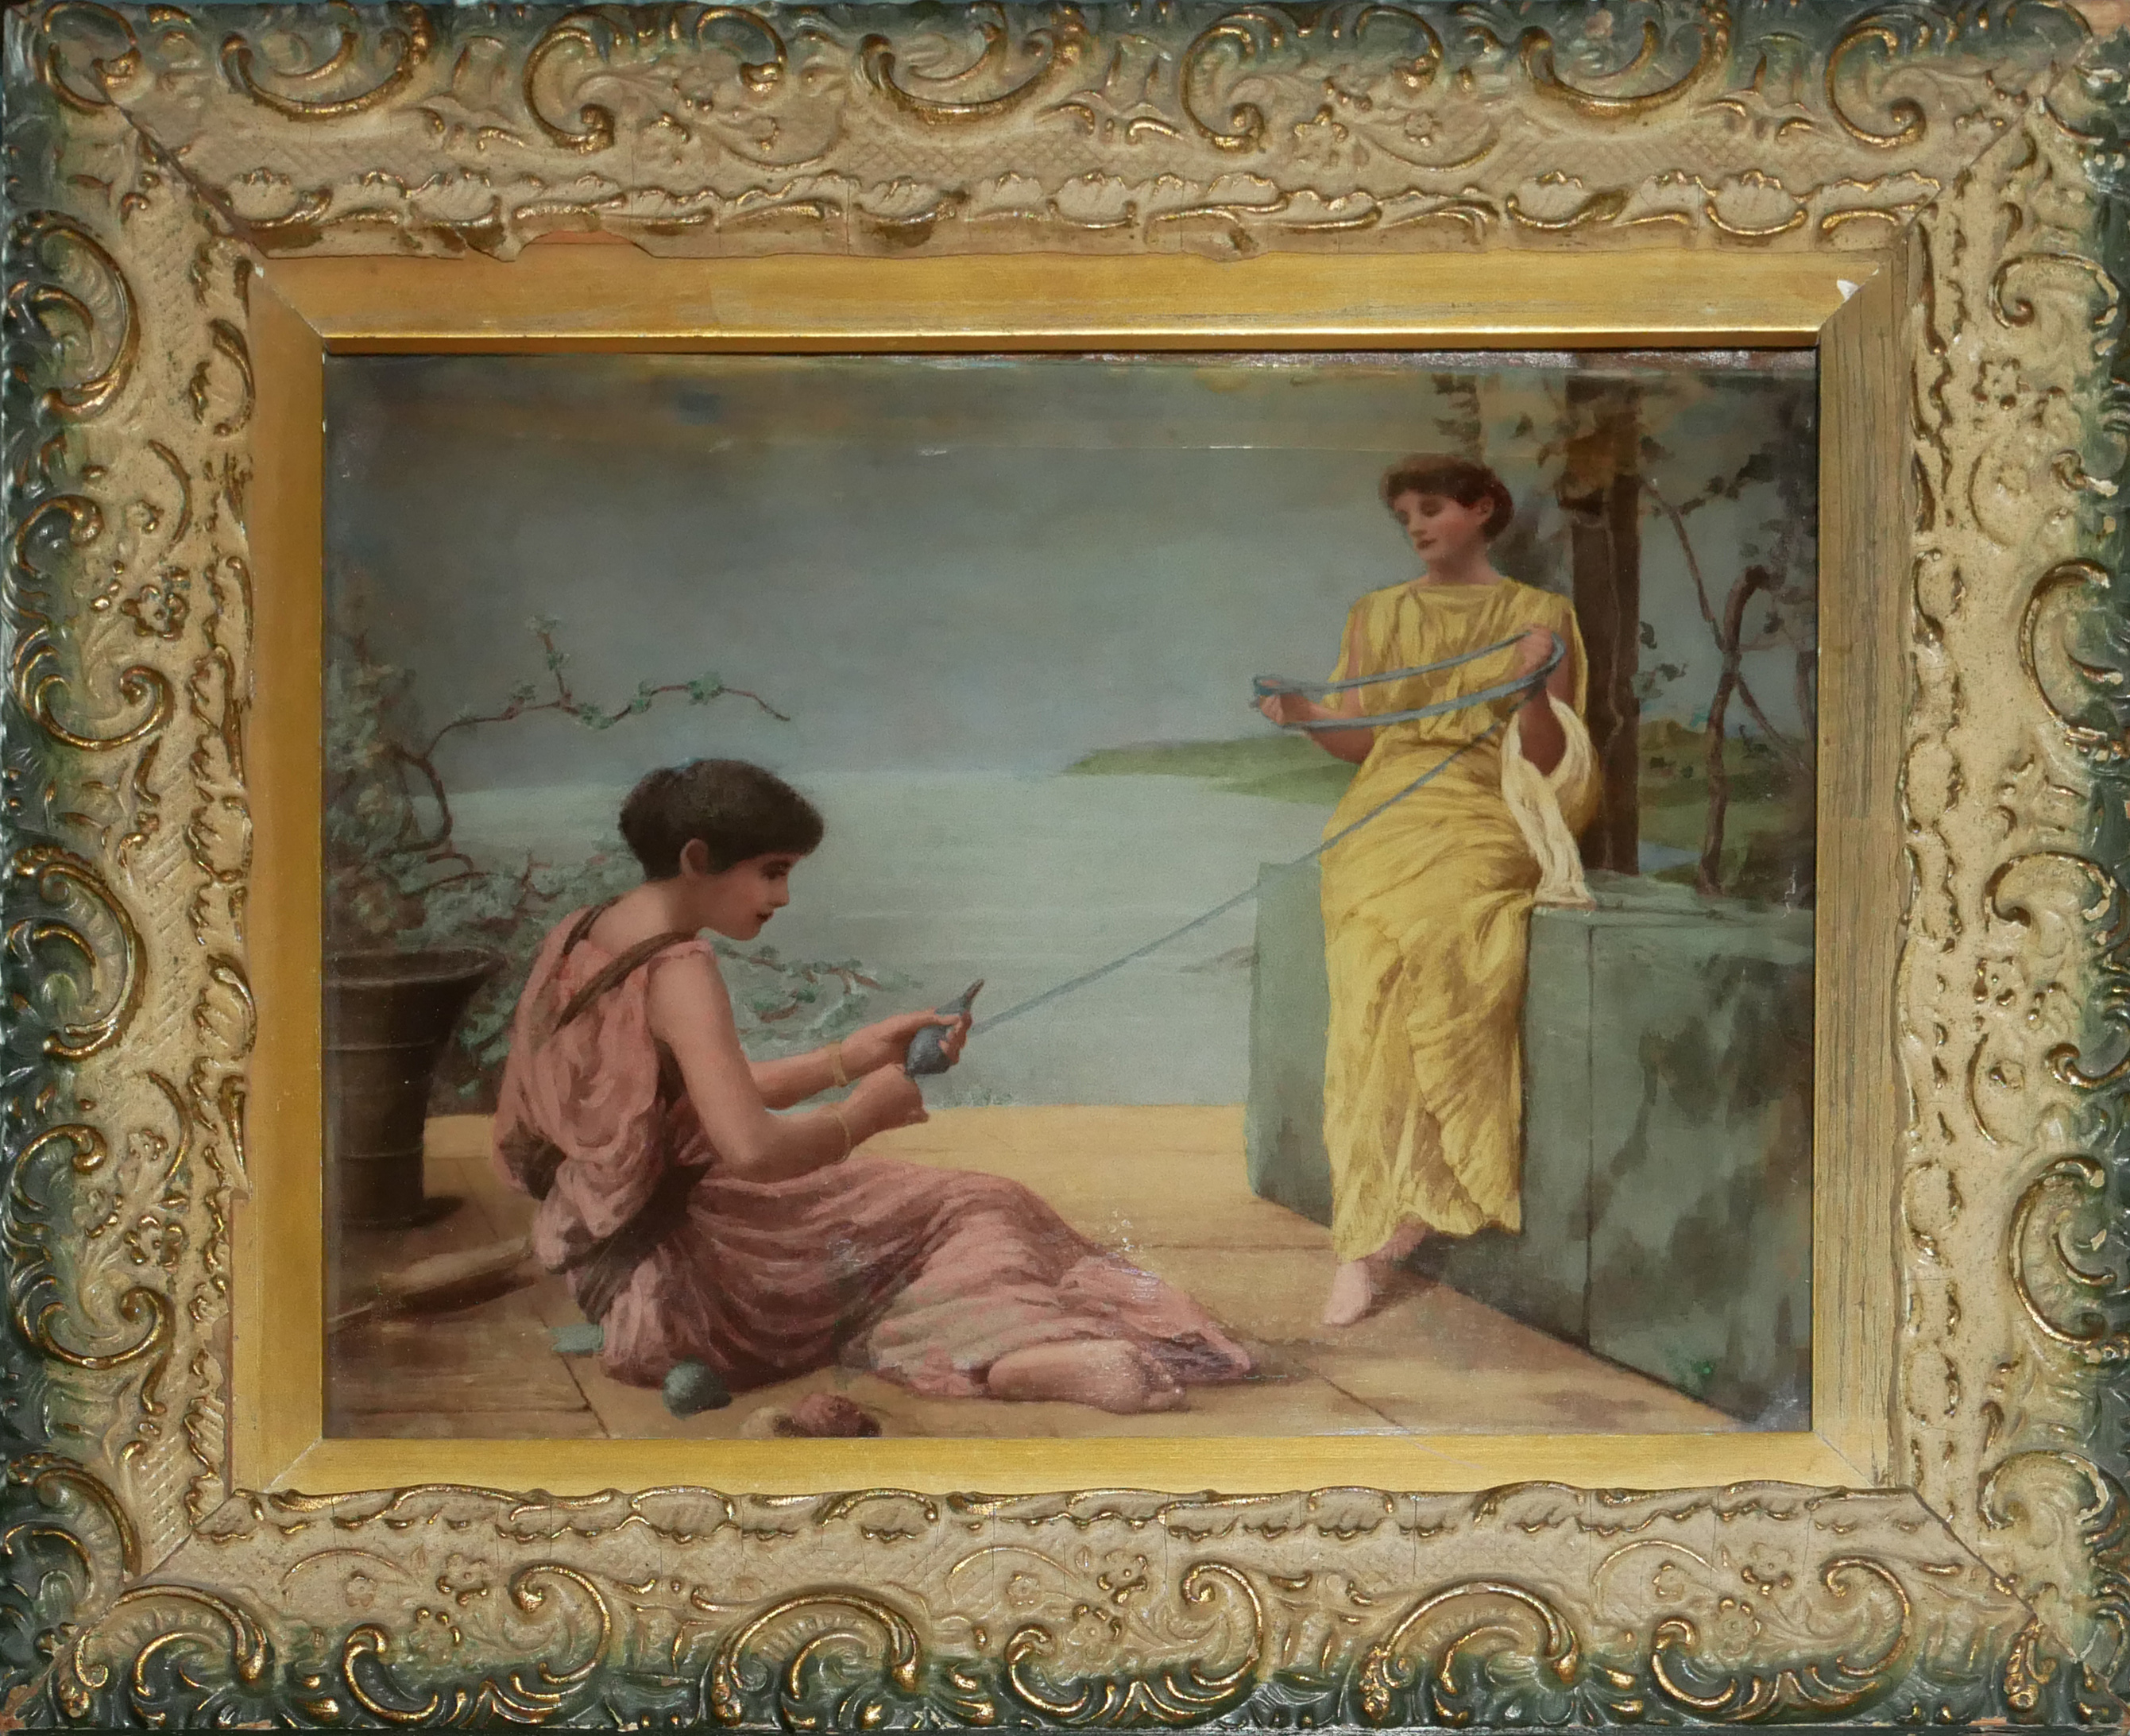 AFTER HENRY RYLAND, 1856 - 1924, CRYSTOLEUM PORTRAIT SCENE Two classical maidens with twine, in a